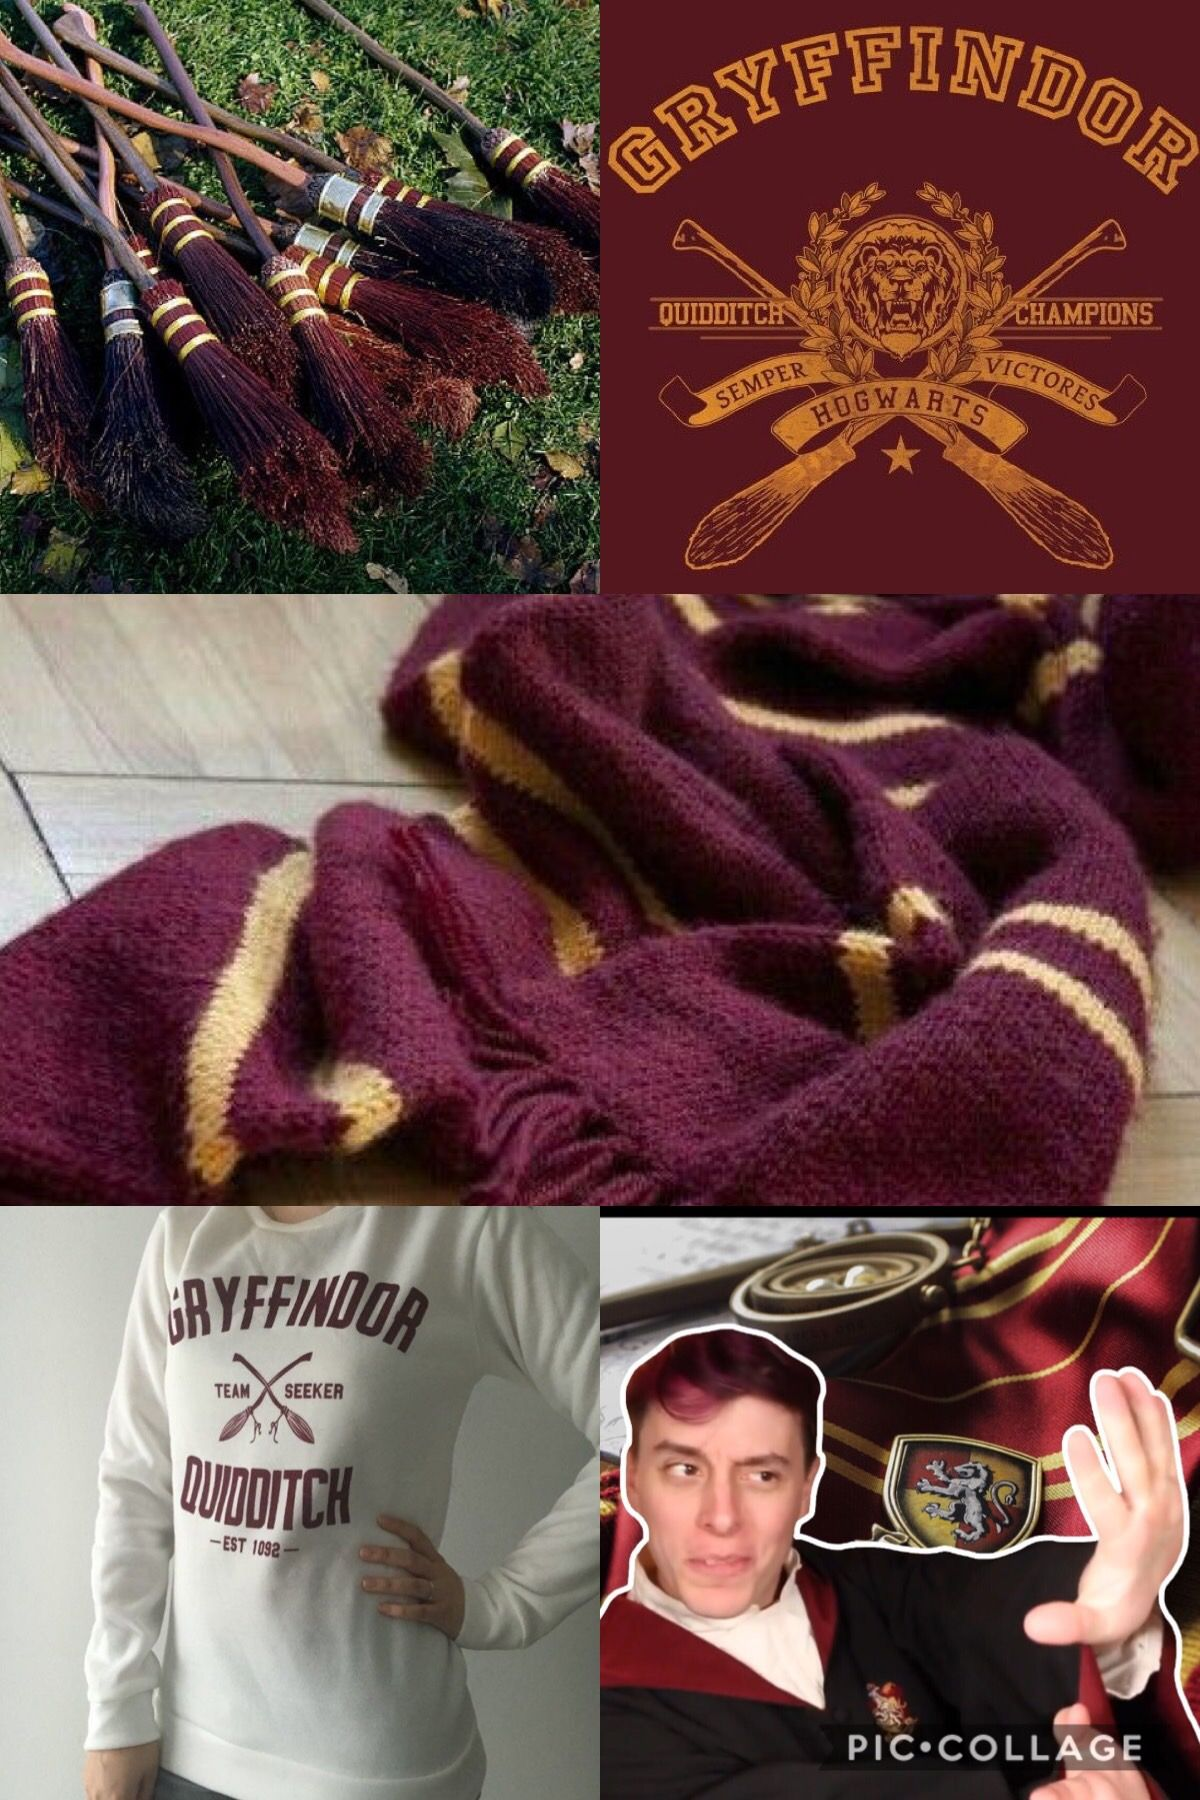 Pin By Saracsilosa Im Back On Thomas Sanders Is Life Griffindor Thomas And His Friends Thomas Sanders